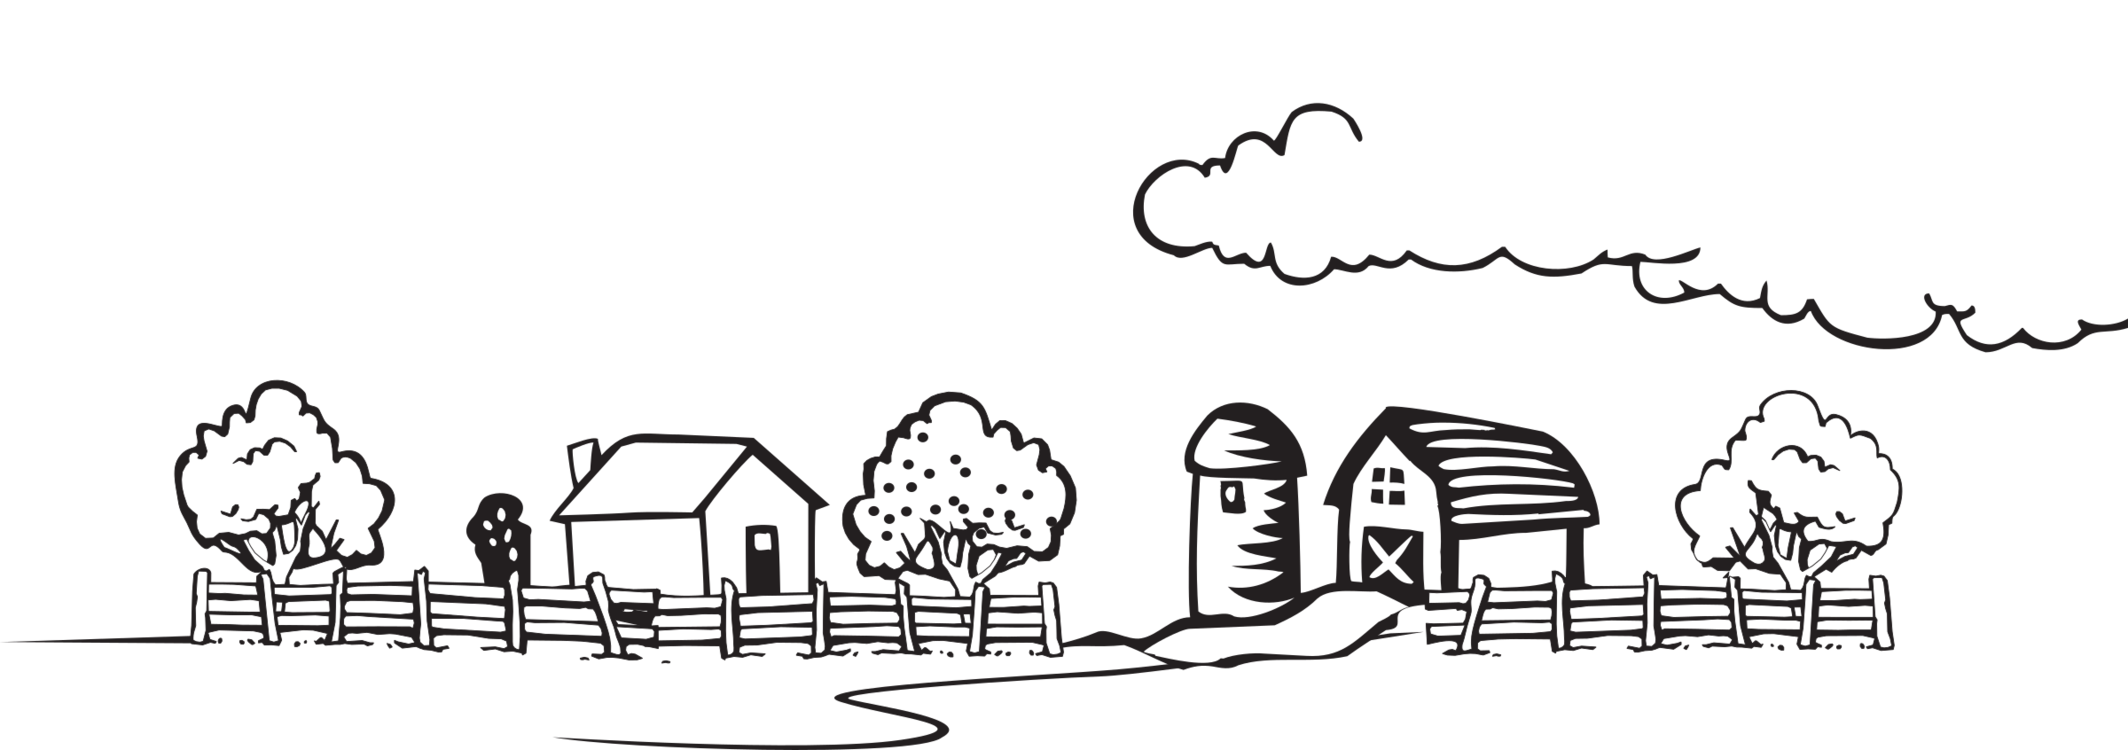 Farm house cblack and white clipart transparent stock Farmhouse Farmer Download Coloring book free commercial clipart ... transparent stock